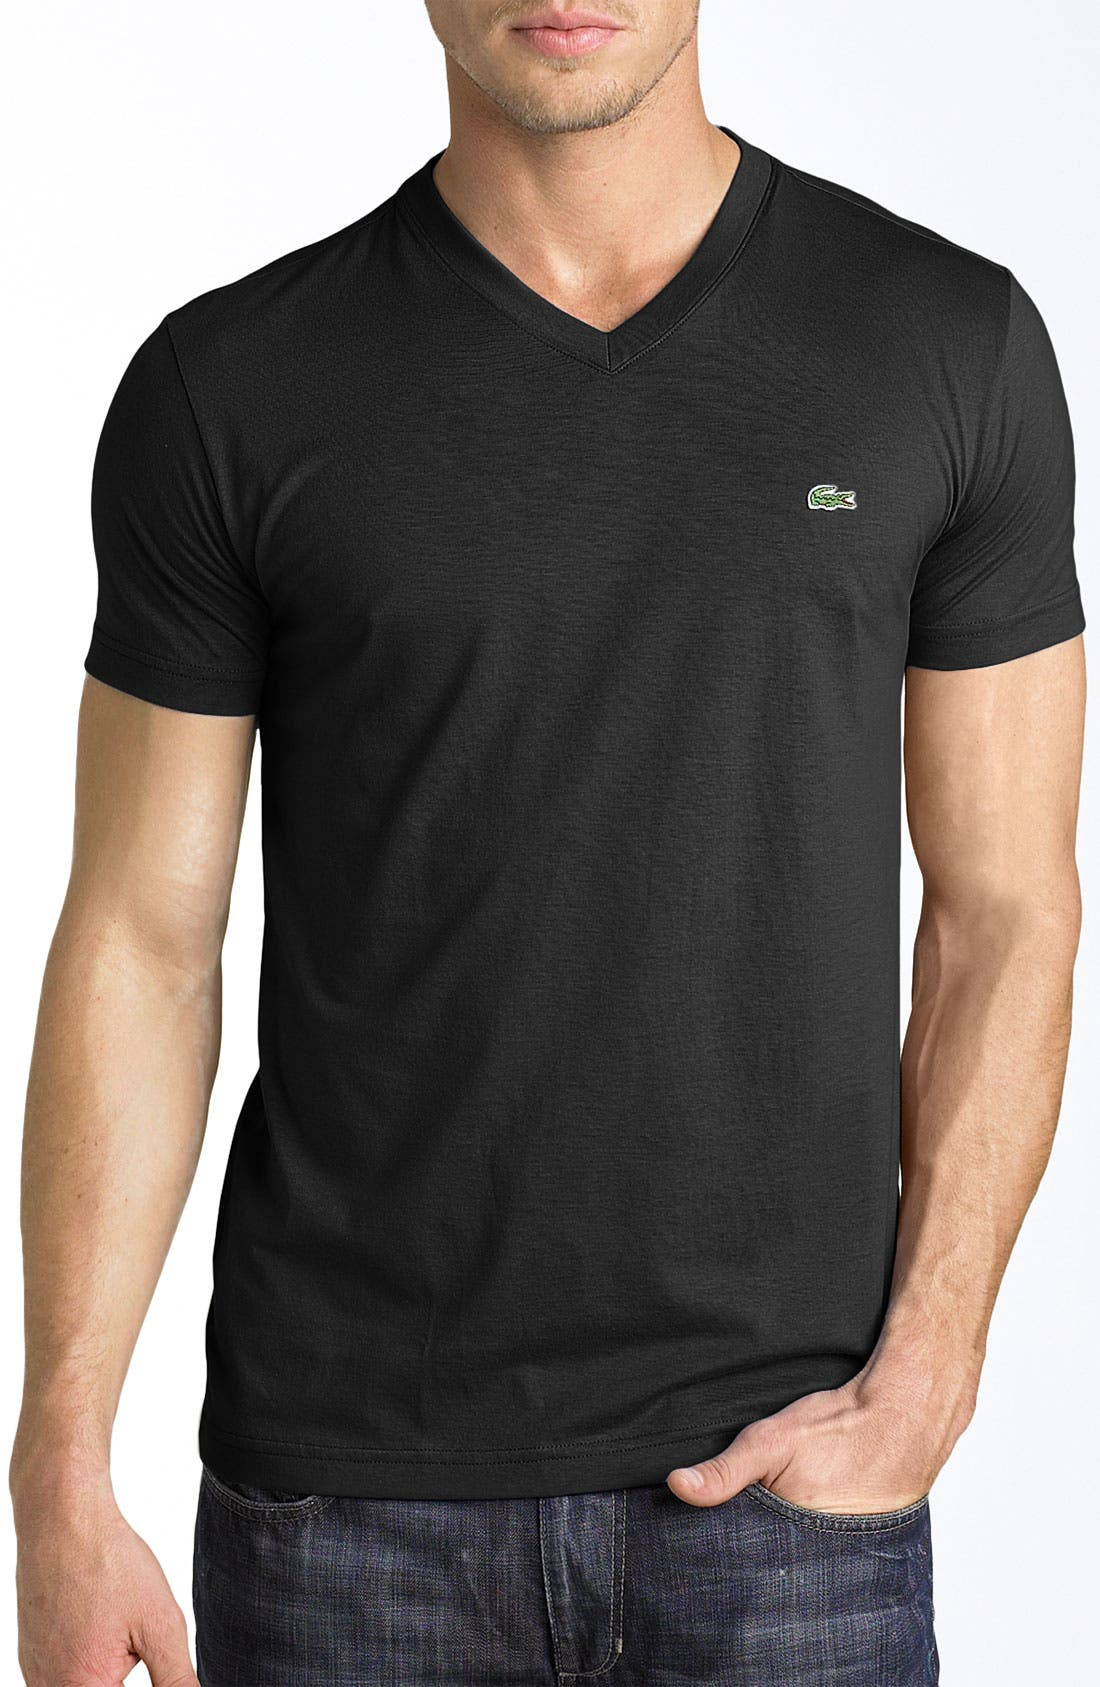 Alternate Image 1 Selected - Lacoste V-Neck Cotton T-Shirt (Tall)